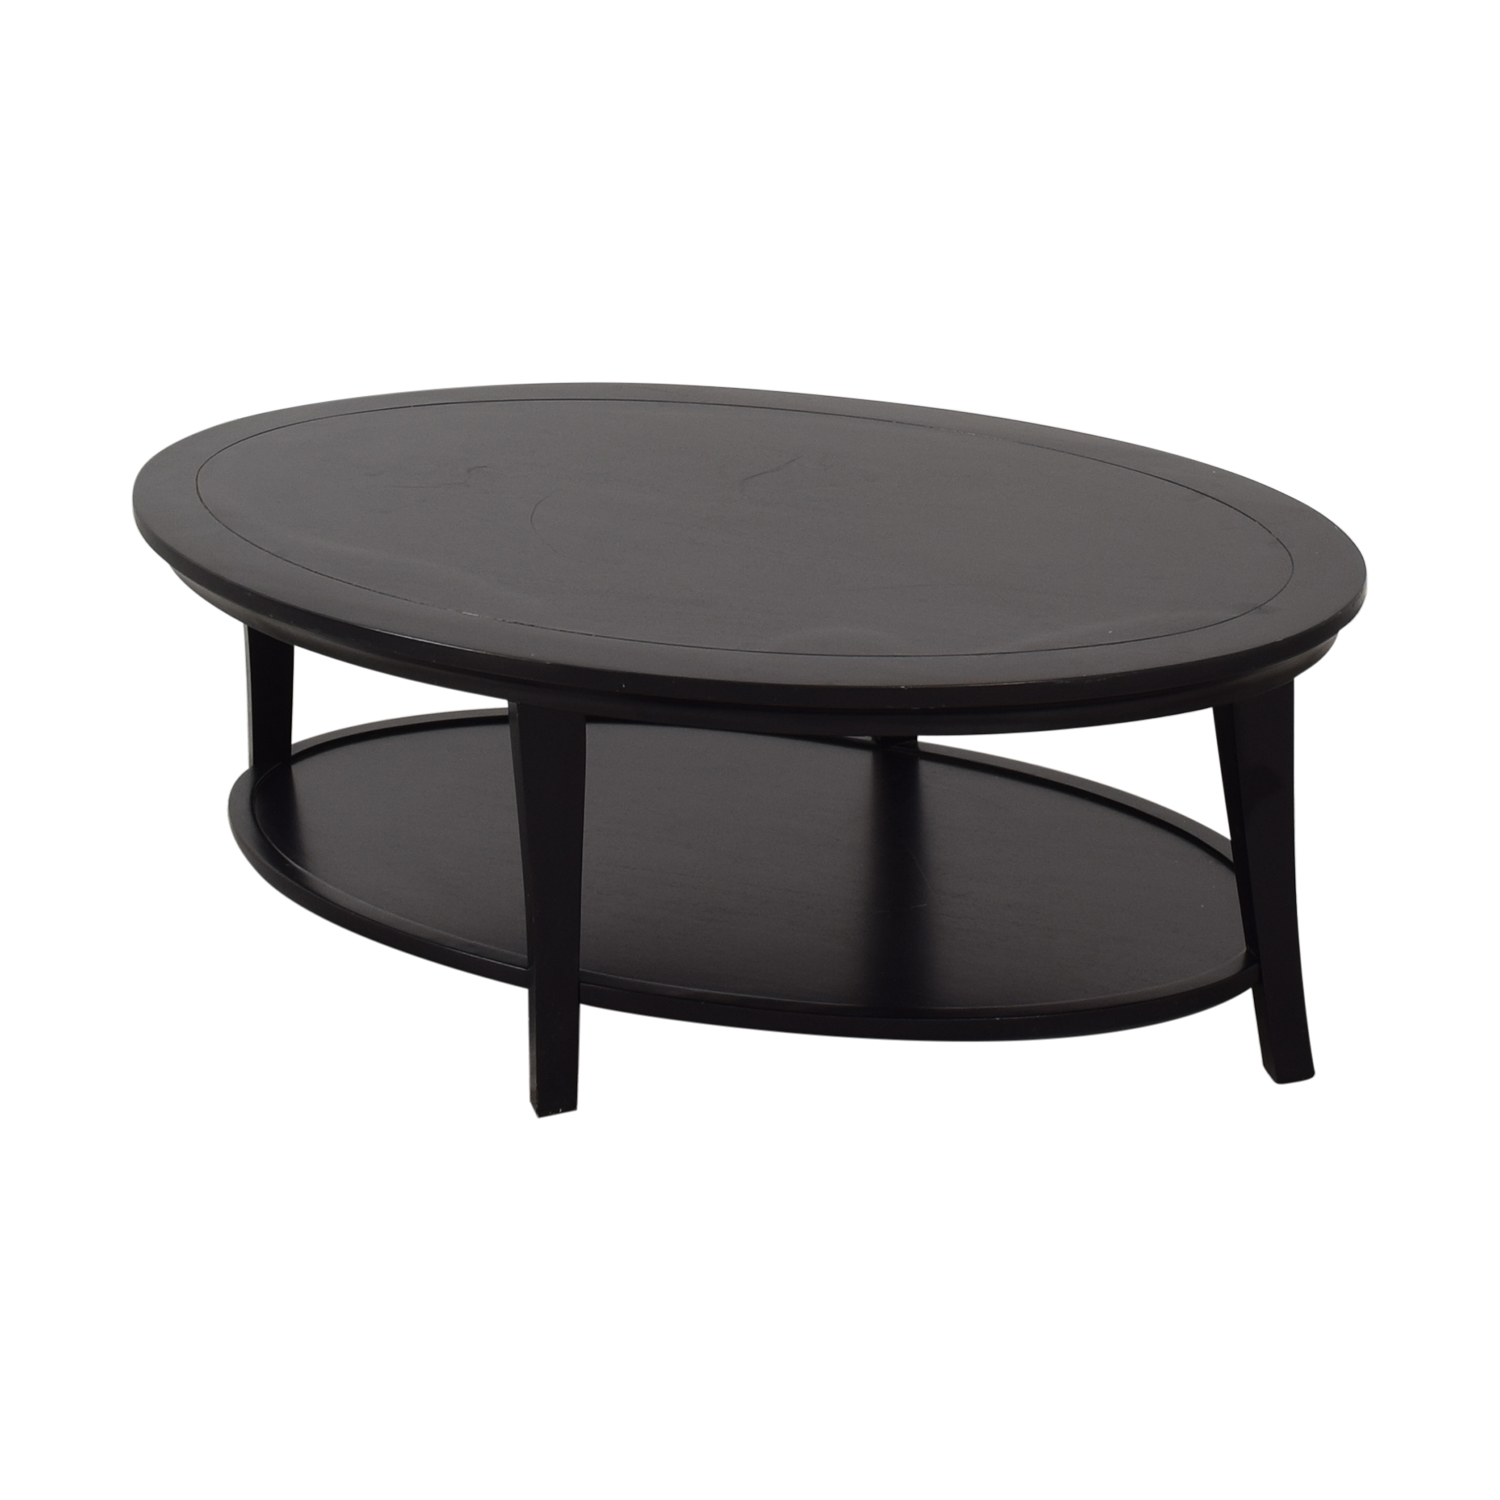 Superb 14 Off Pottery Barn Pottery Barn Metropolitan Oval Coffee Table Tables Ibusinesslaw Wood Chair Design Ideas Ibusinesslaworg